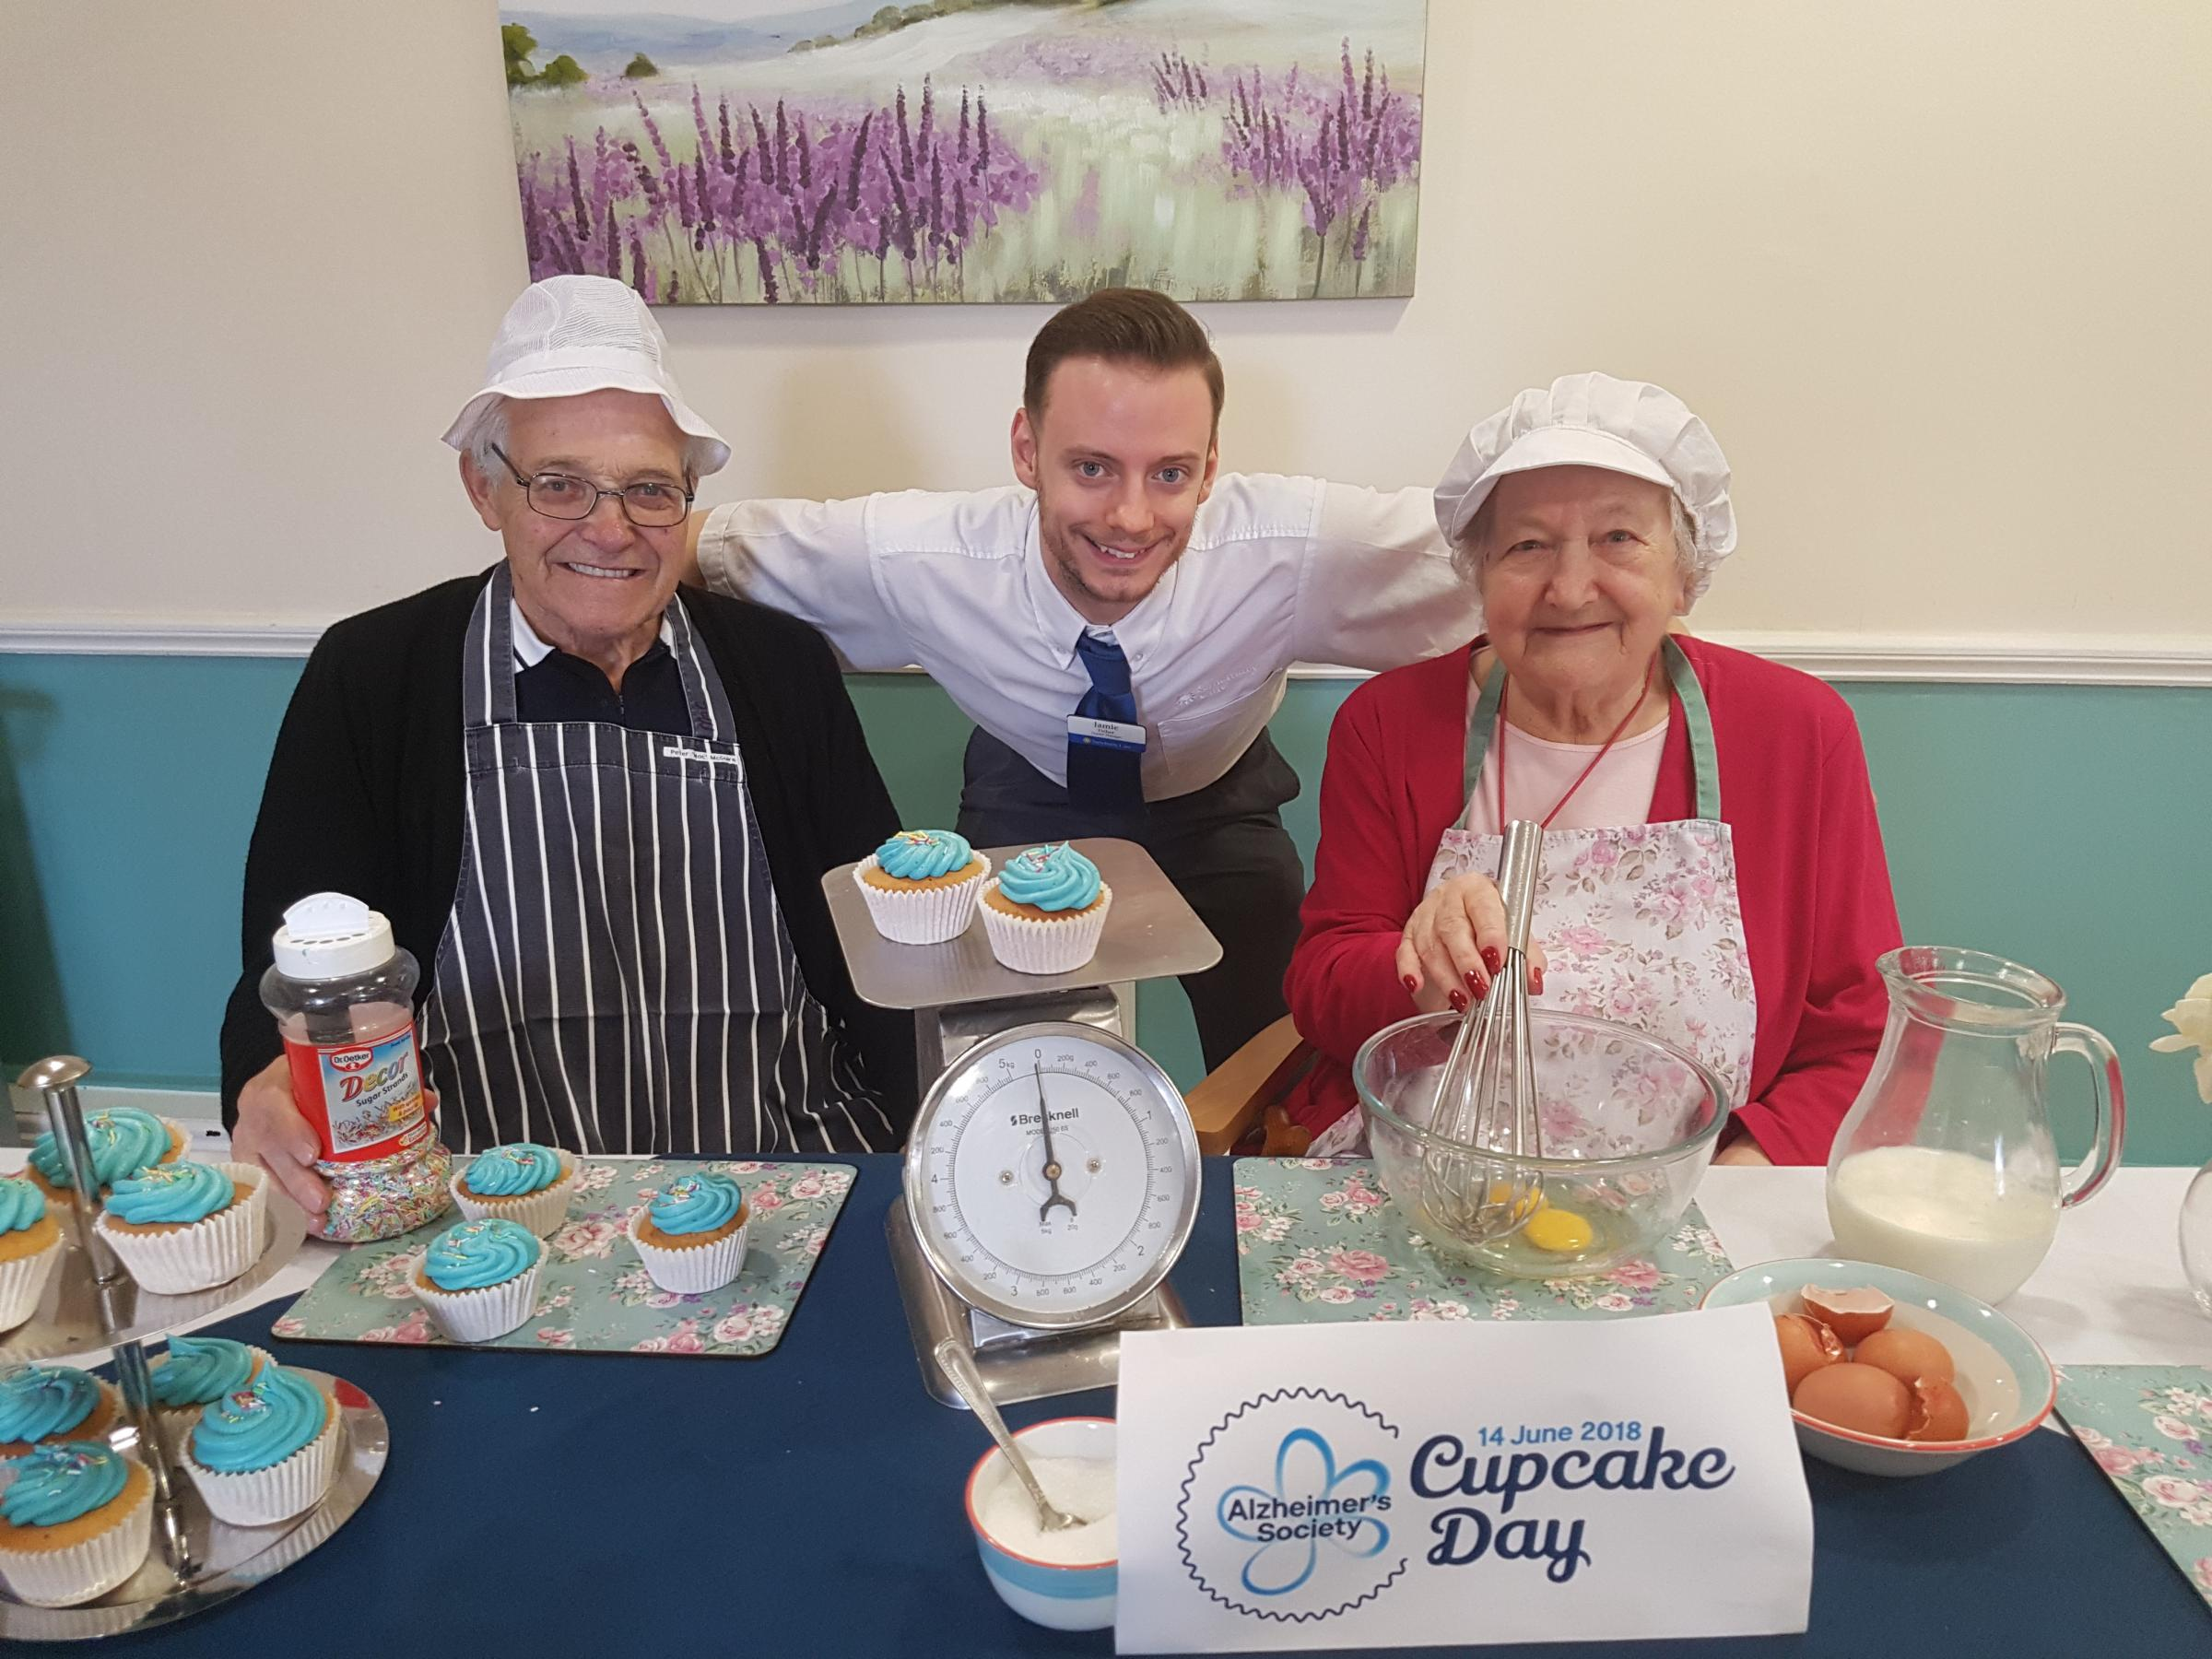 Deputy Manager Jamie Fisher (Centre) with residents David Andrews and Iris Hamblin